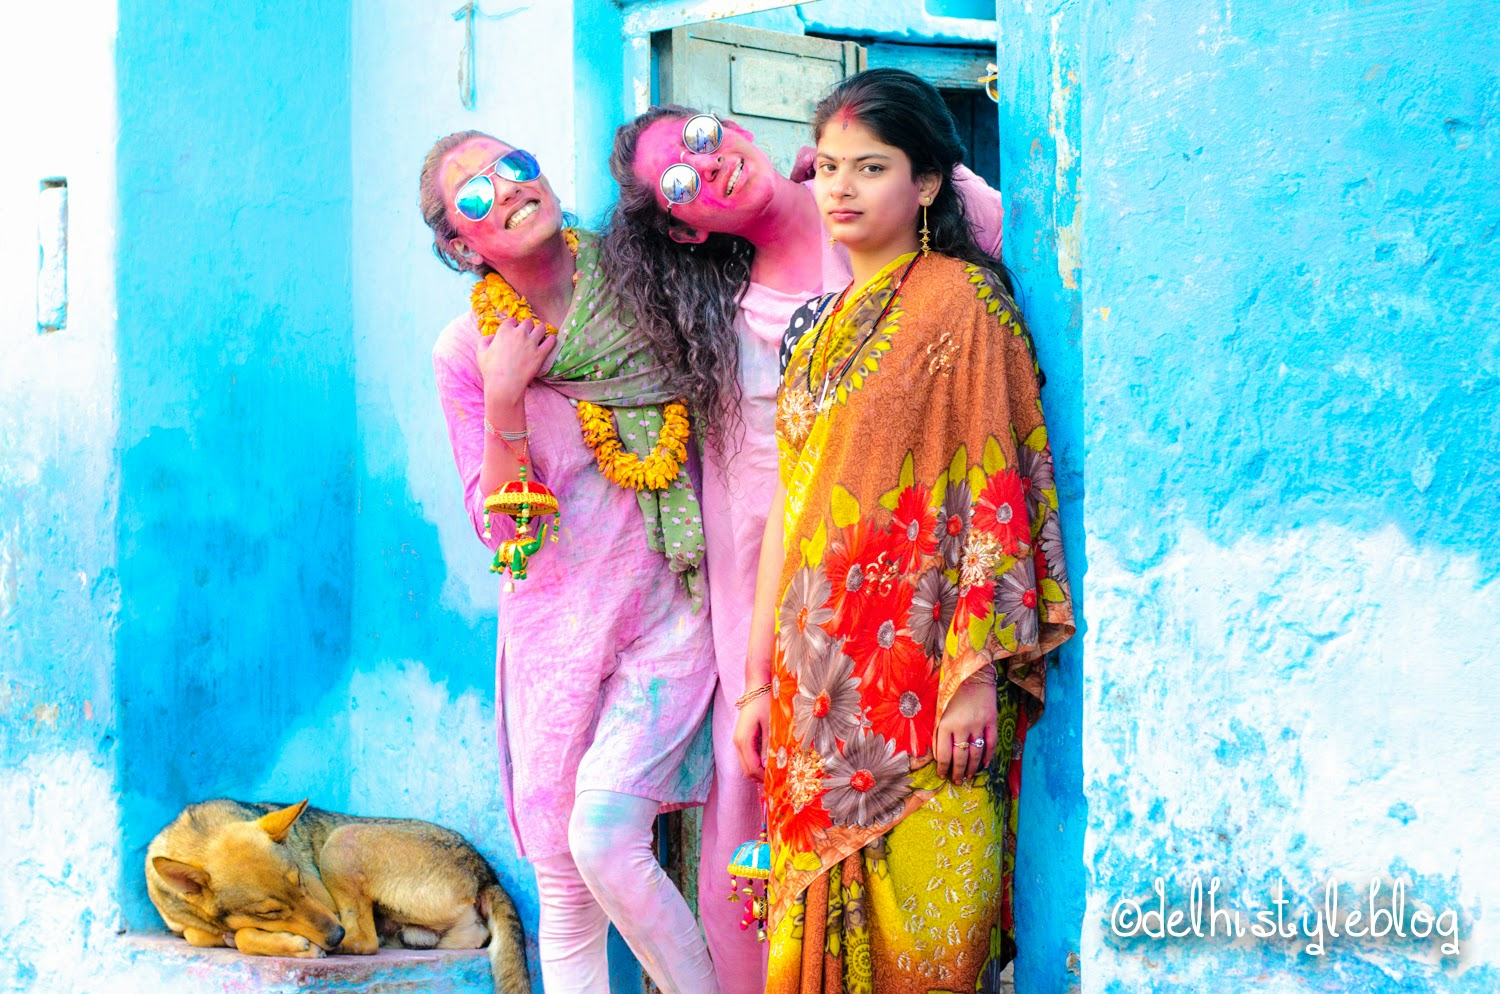 The Filmy Owl Angel Bedi and Delhi Style Blog 2